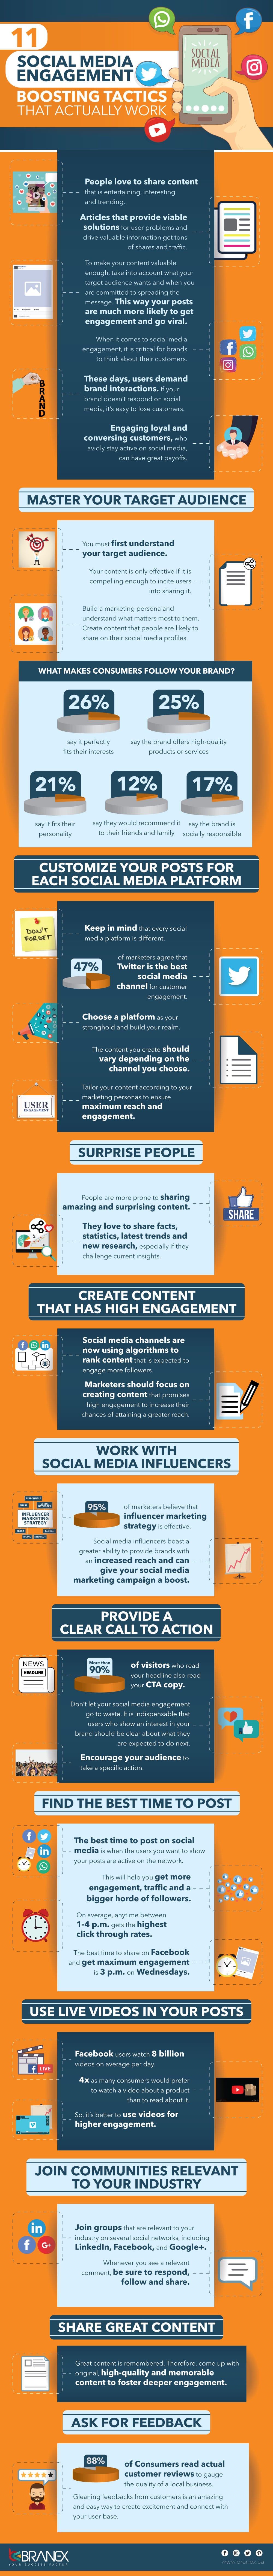 11 ways to boost social media engagement